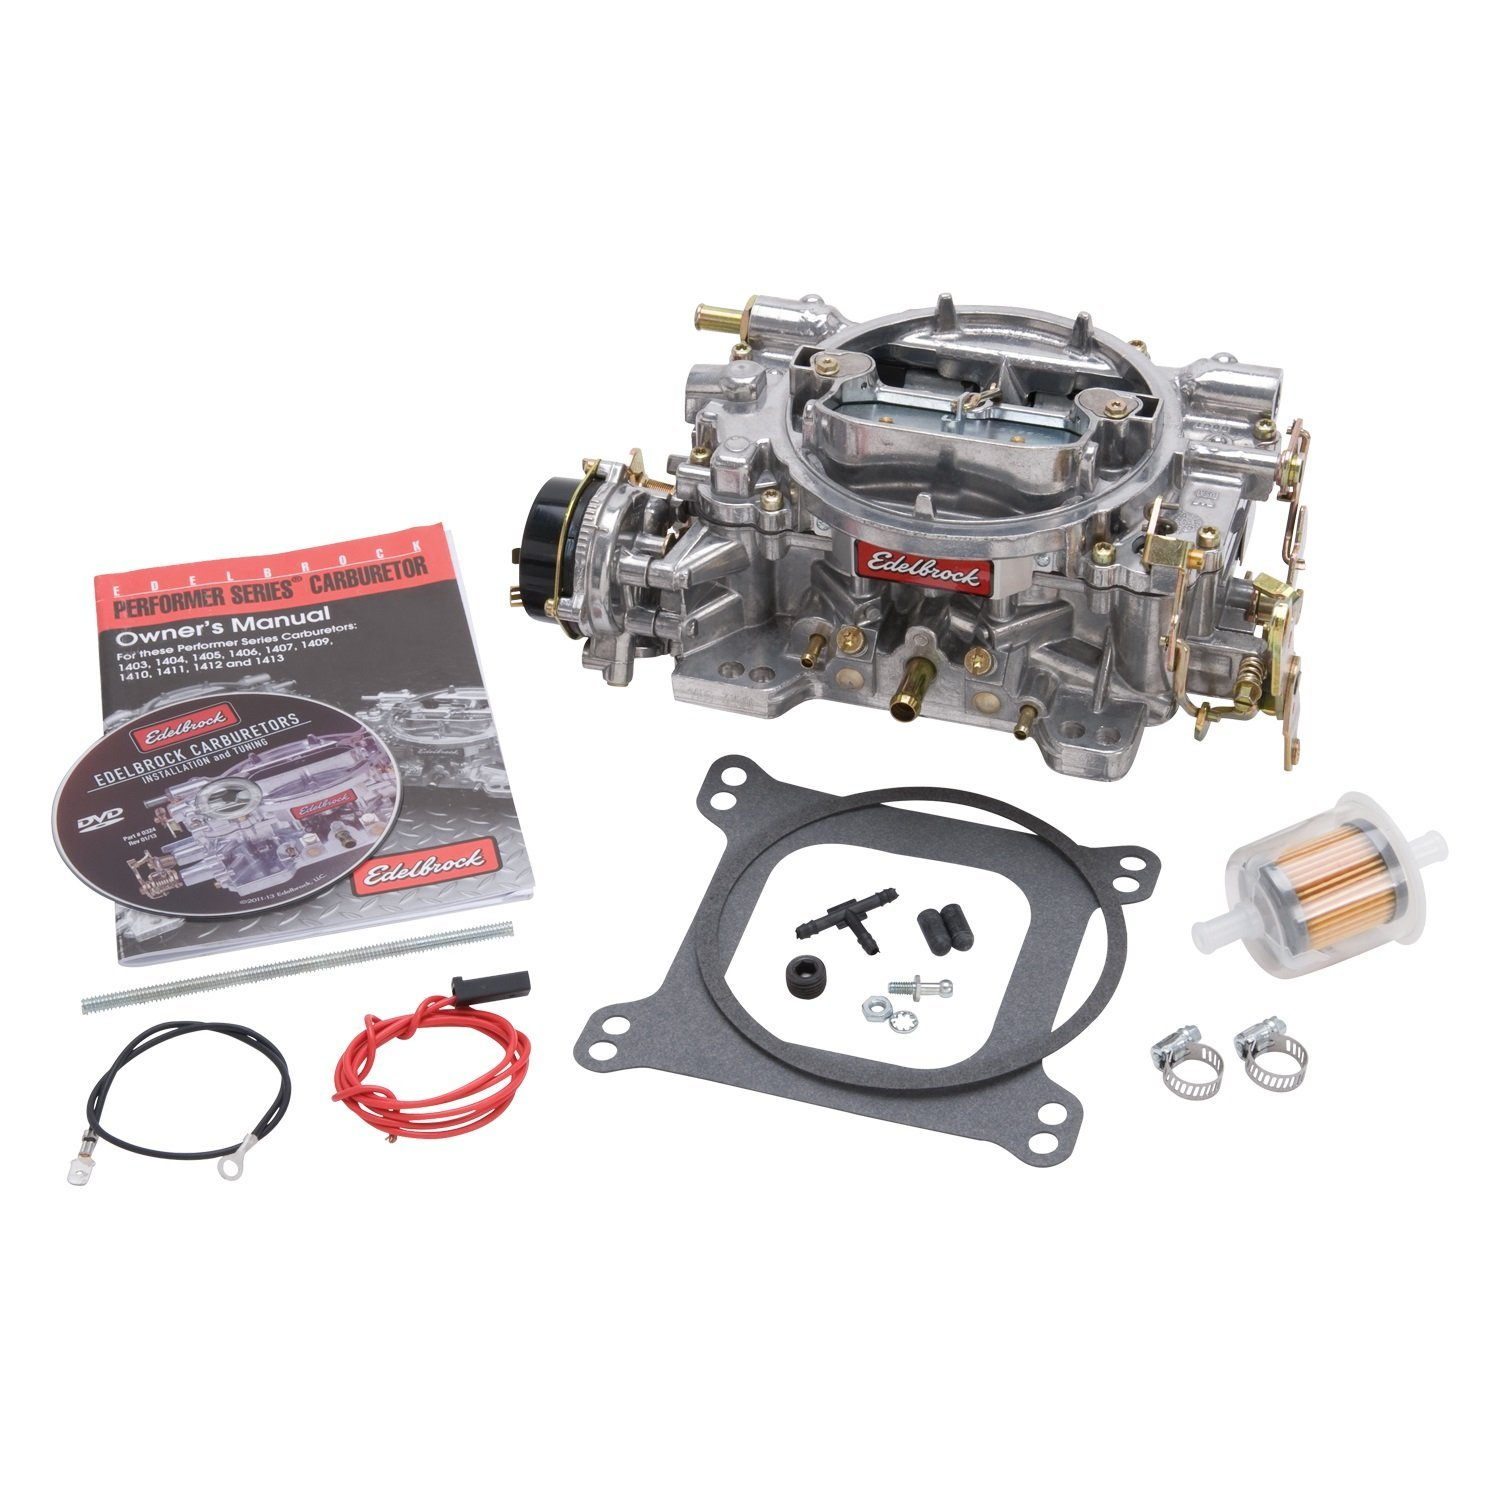 Edelbrock Carburetor  600CFM - Electric Choke (new)